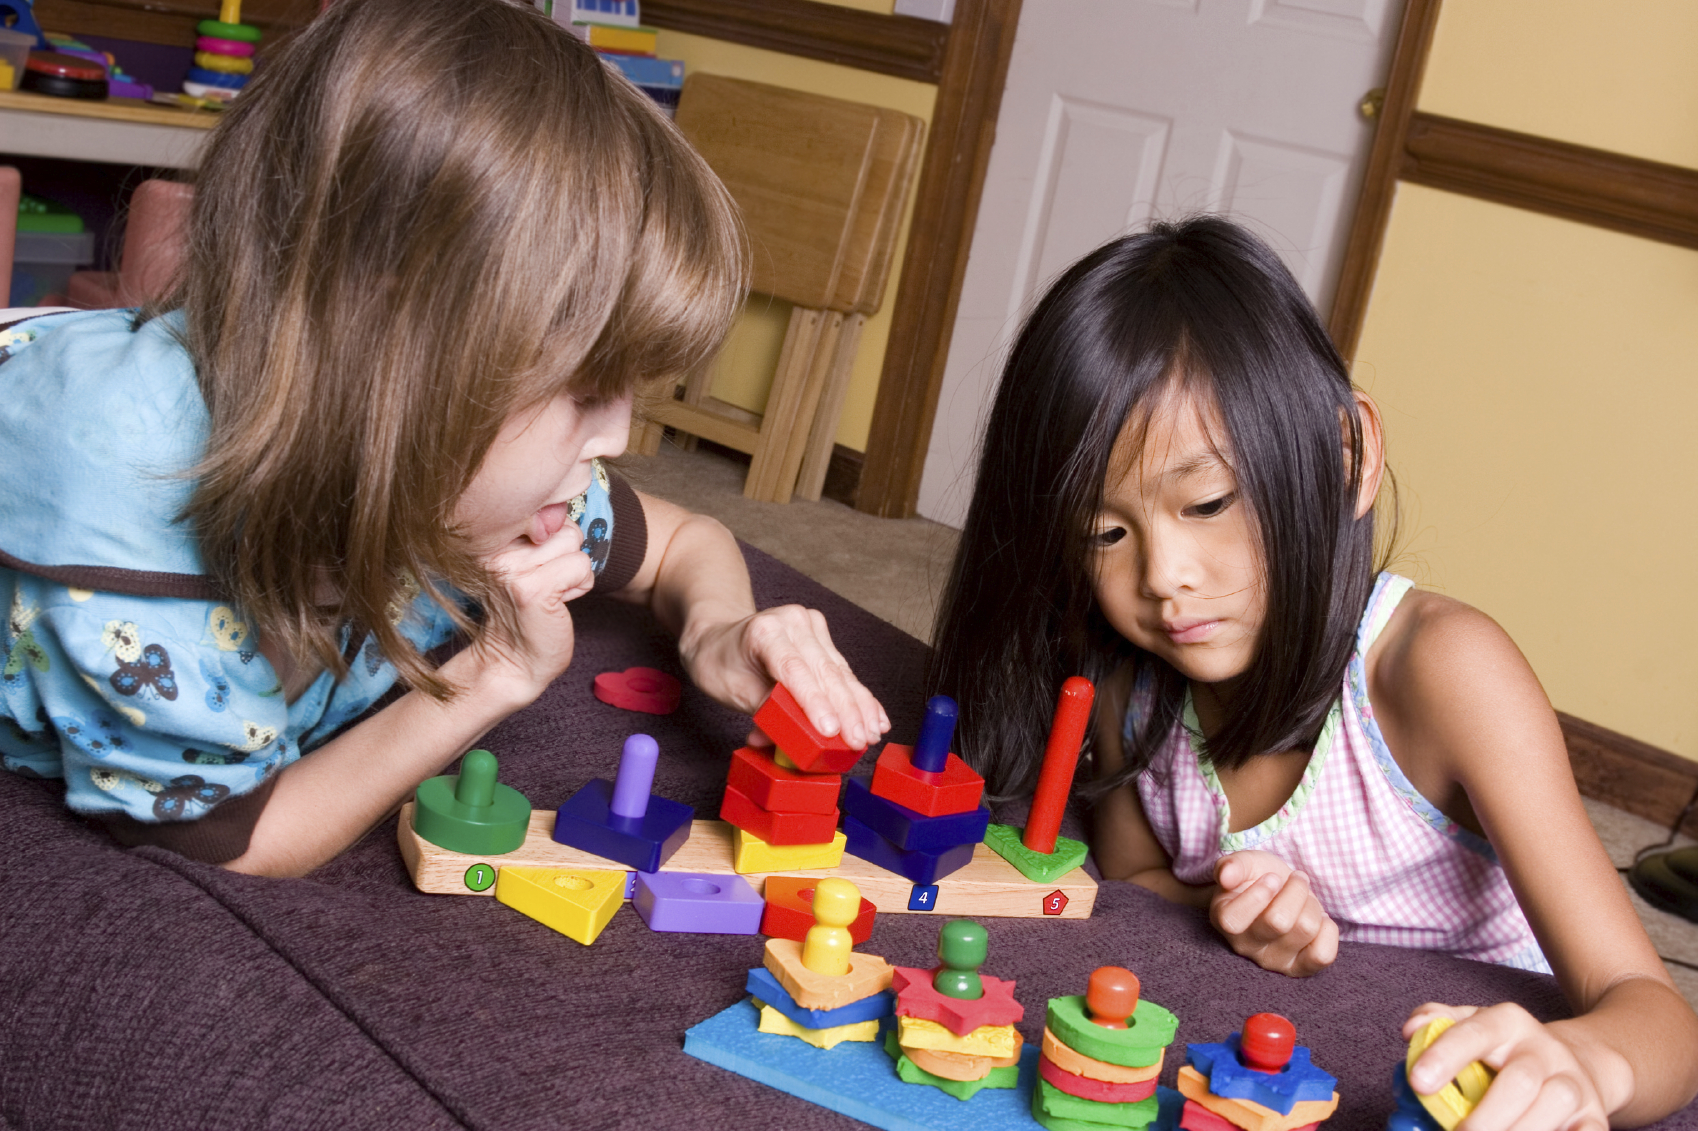 Two children playing with building blocks